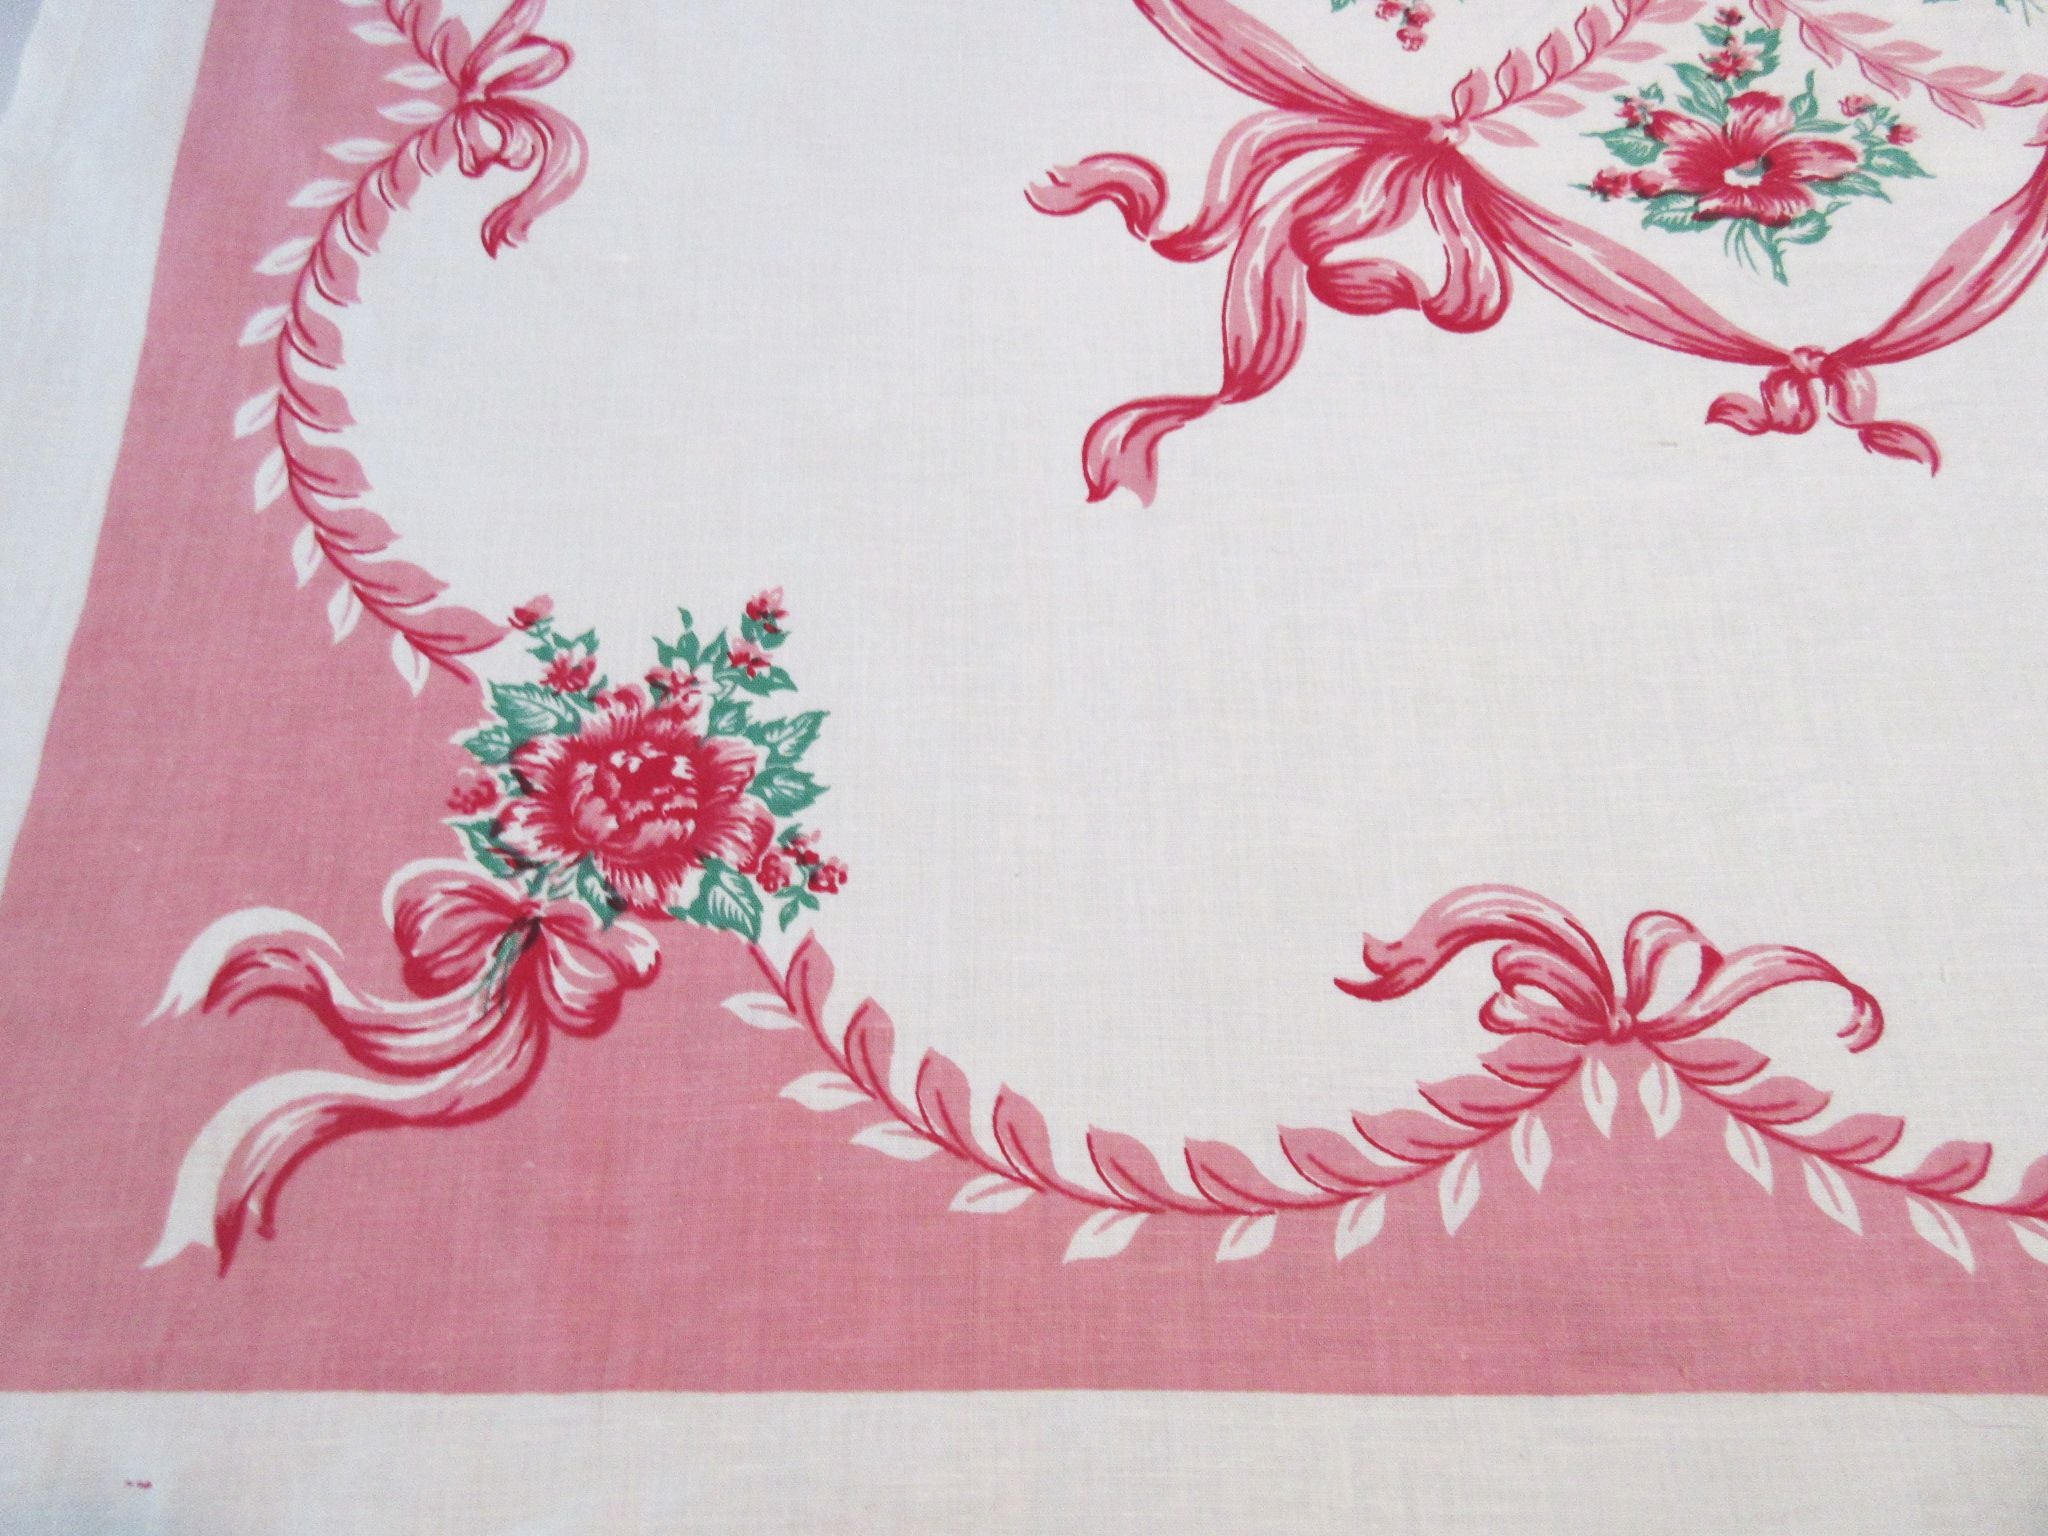 Stunning Hibiscus on Pink Ribbons Linen Floral Vintage Printed Tablecloth (51 X 49)